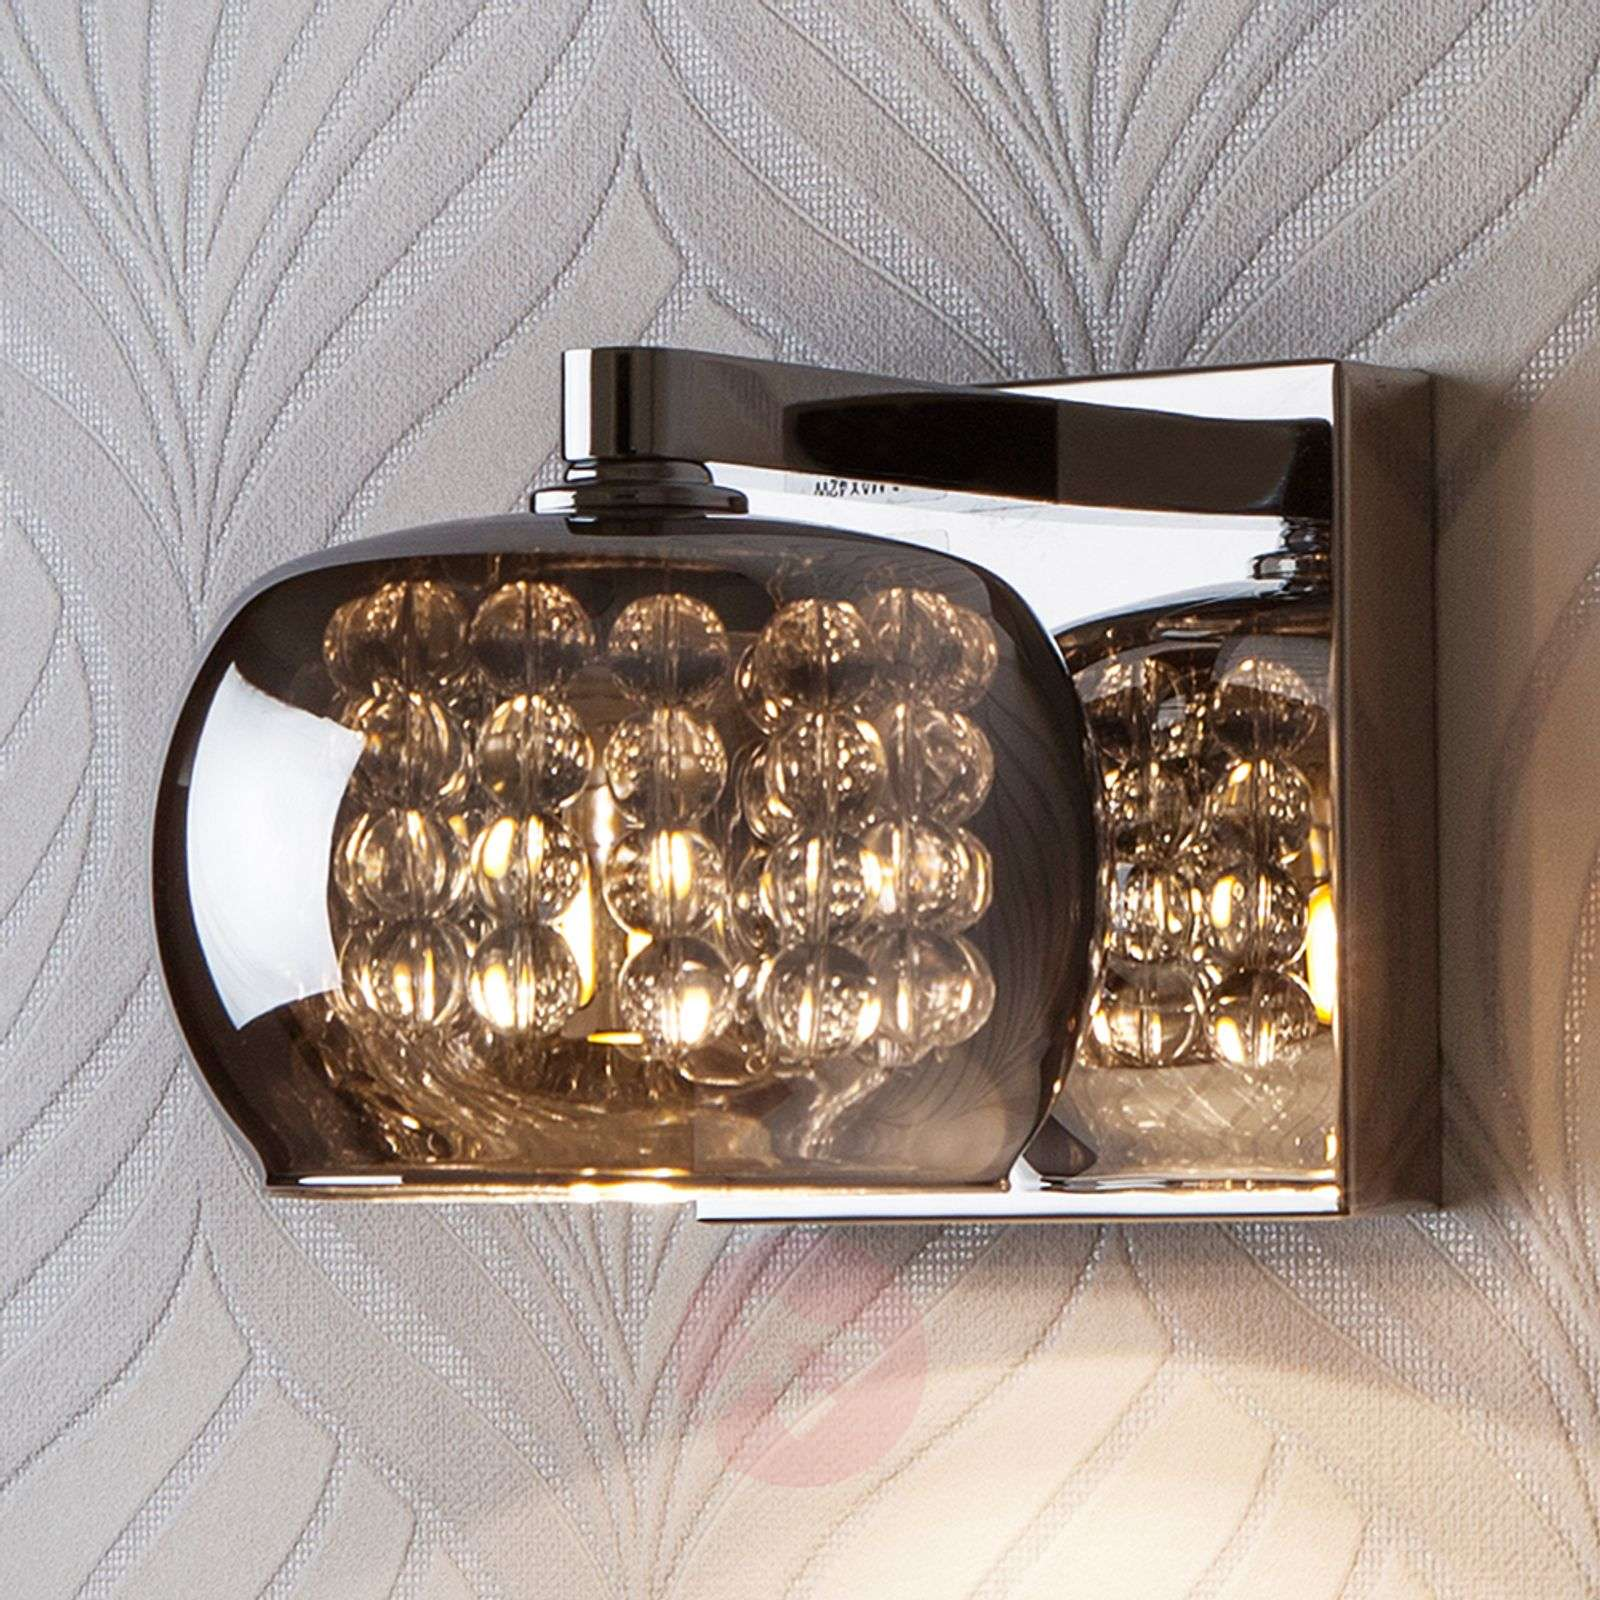 Arian a wall light with a great effect-8582270-01